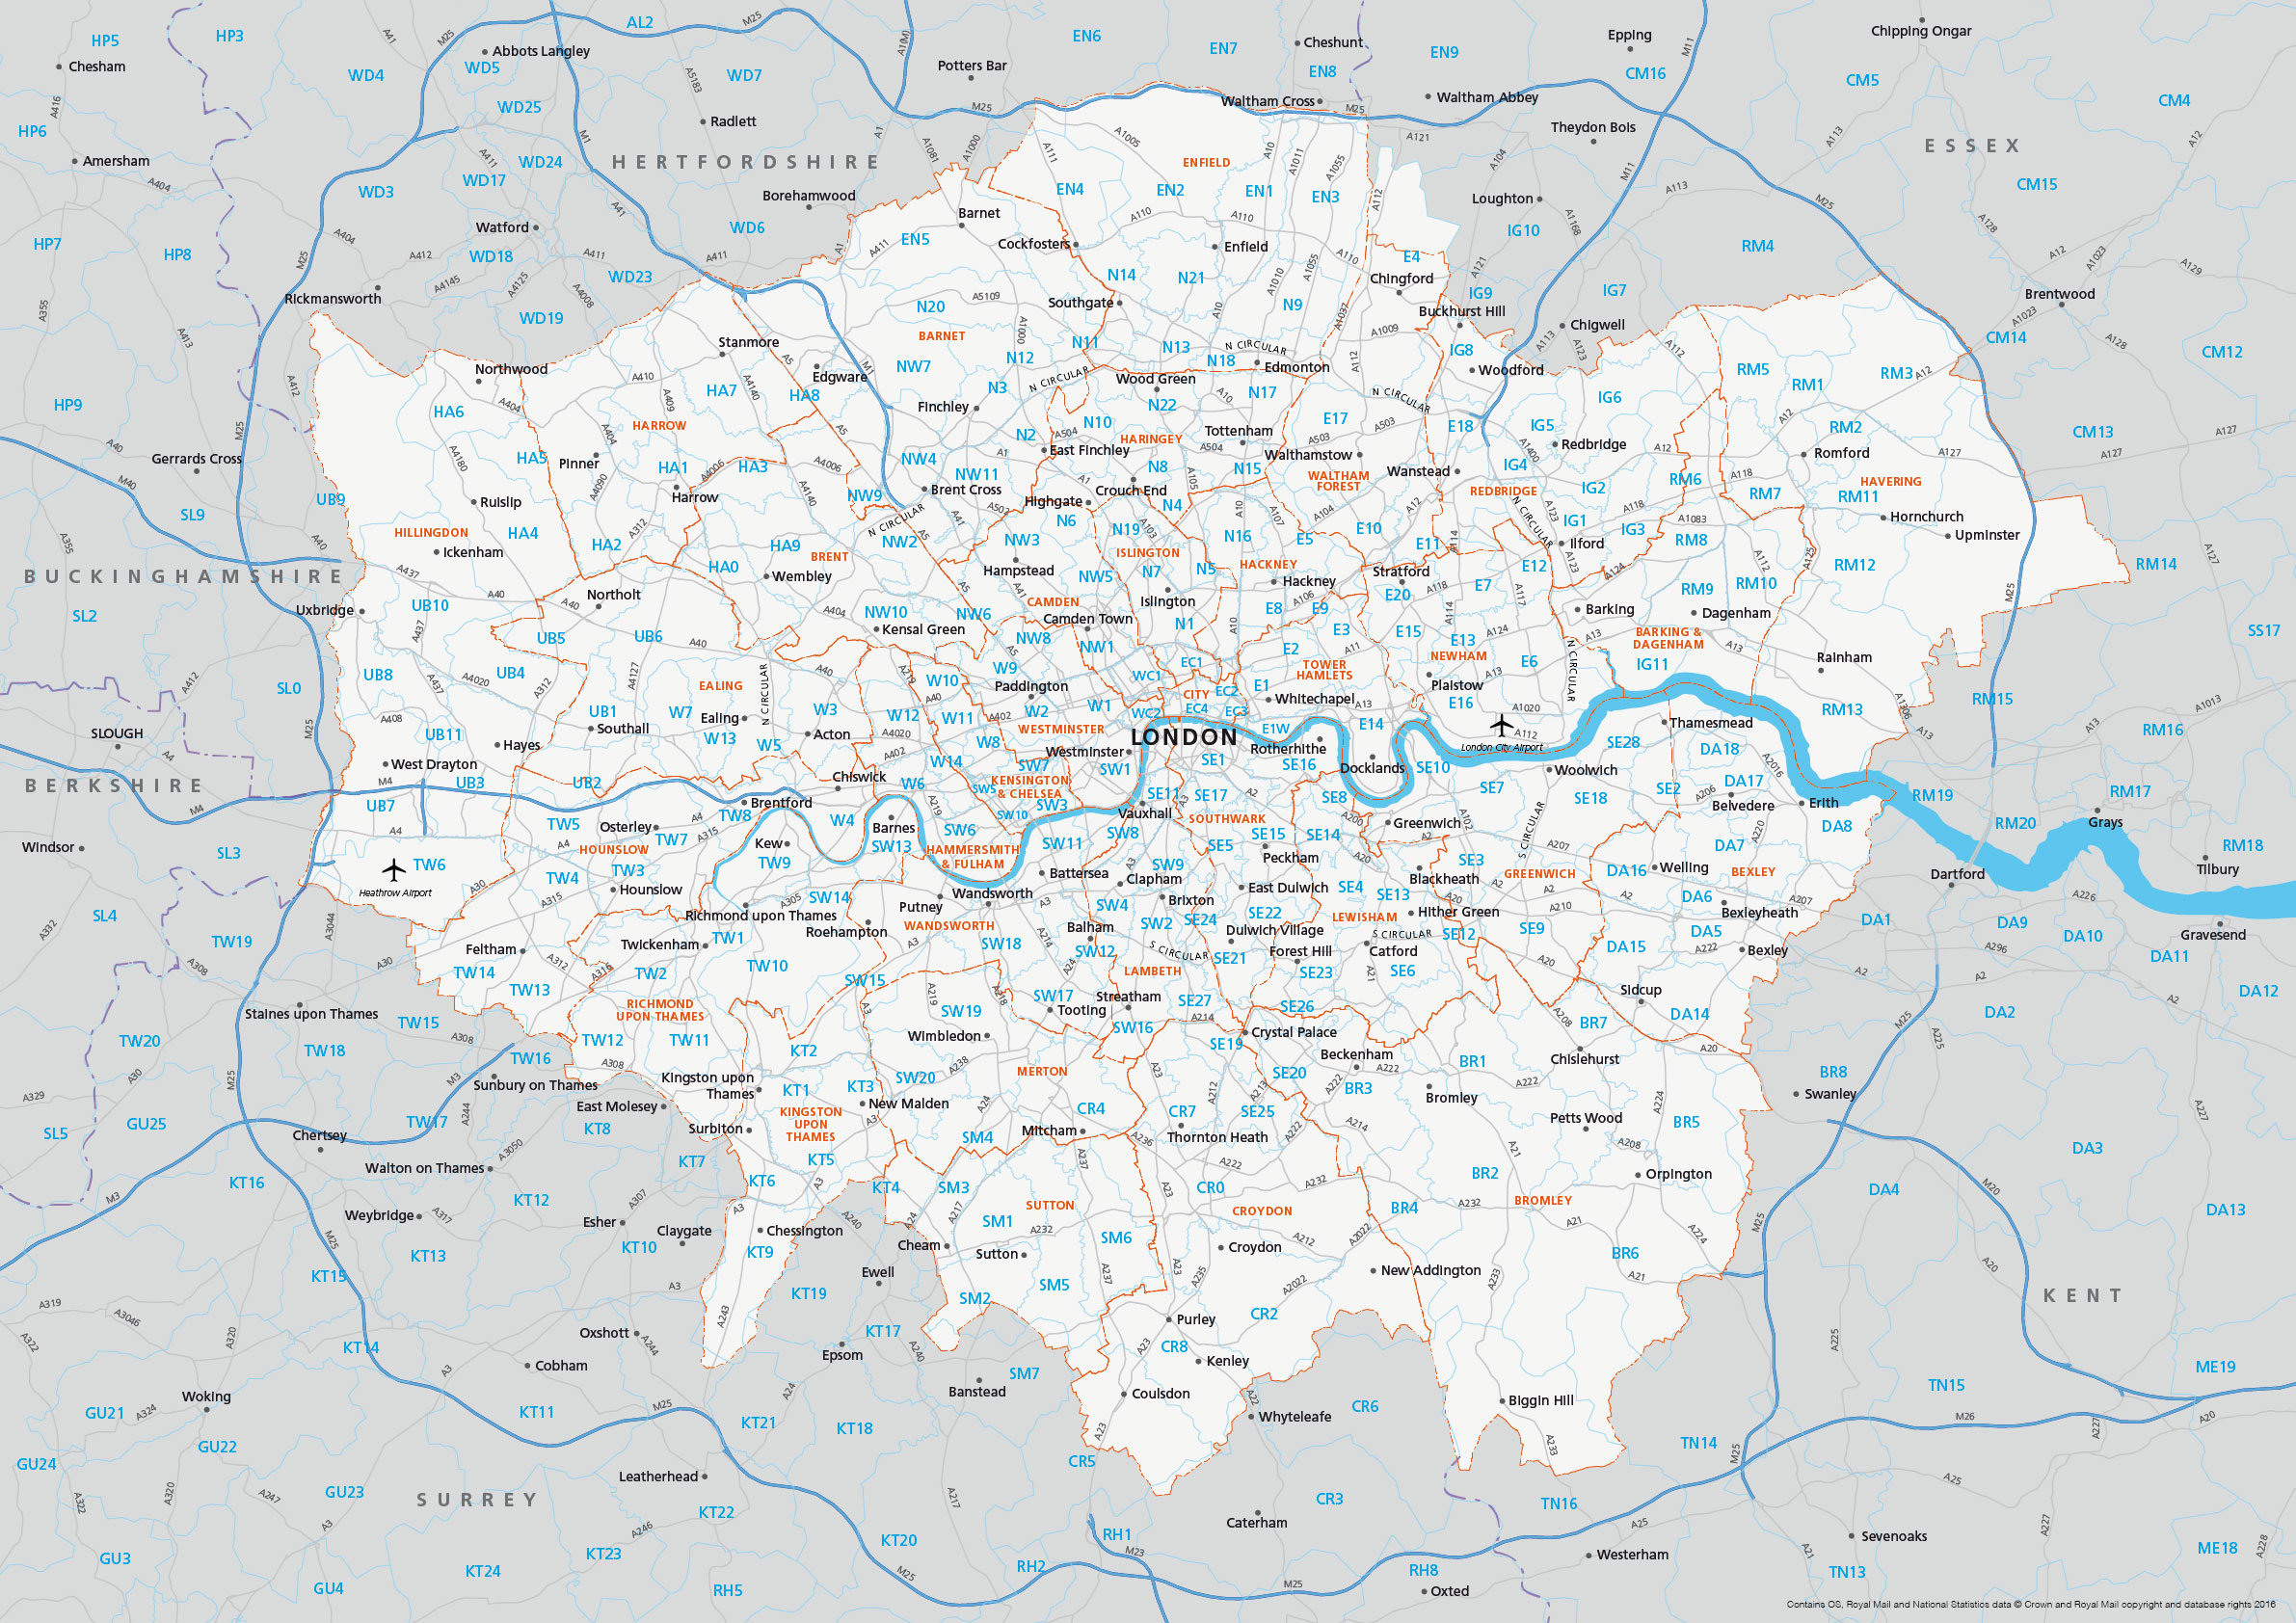 Map To London.Map Of Greater London Postcode Districts Plus Boroughs And Major